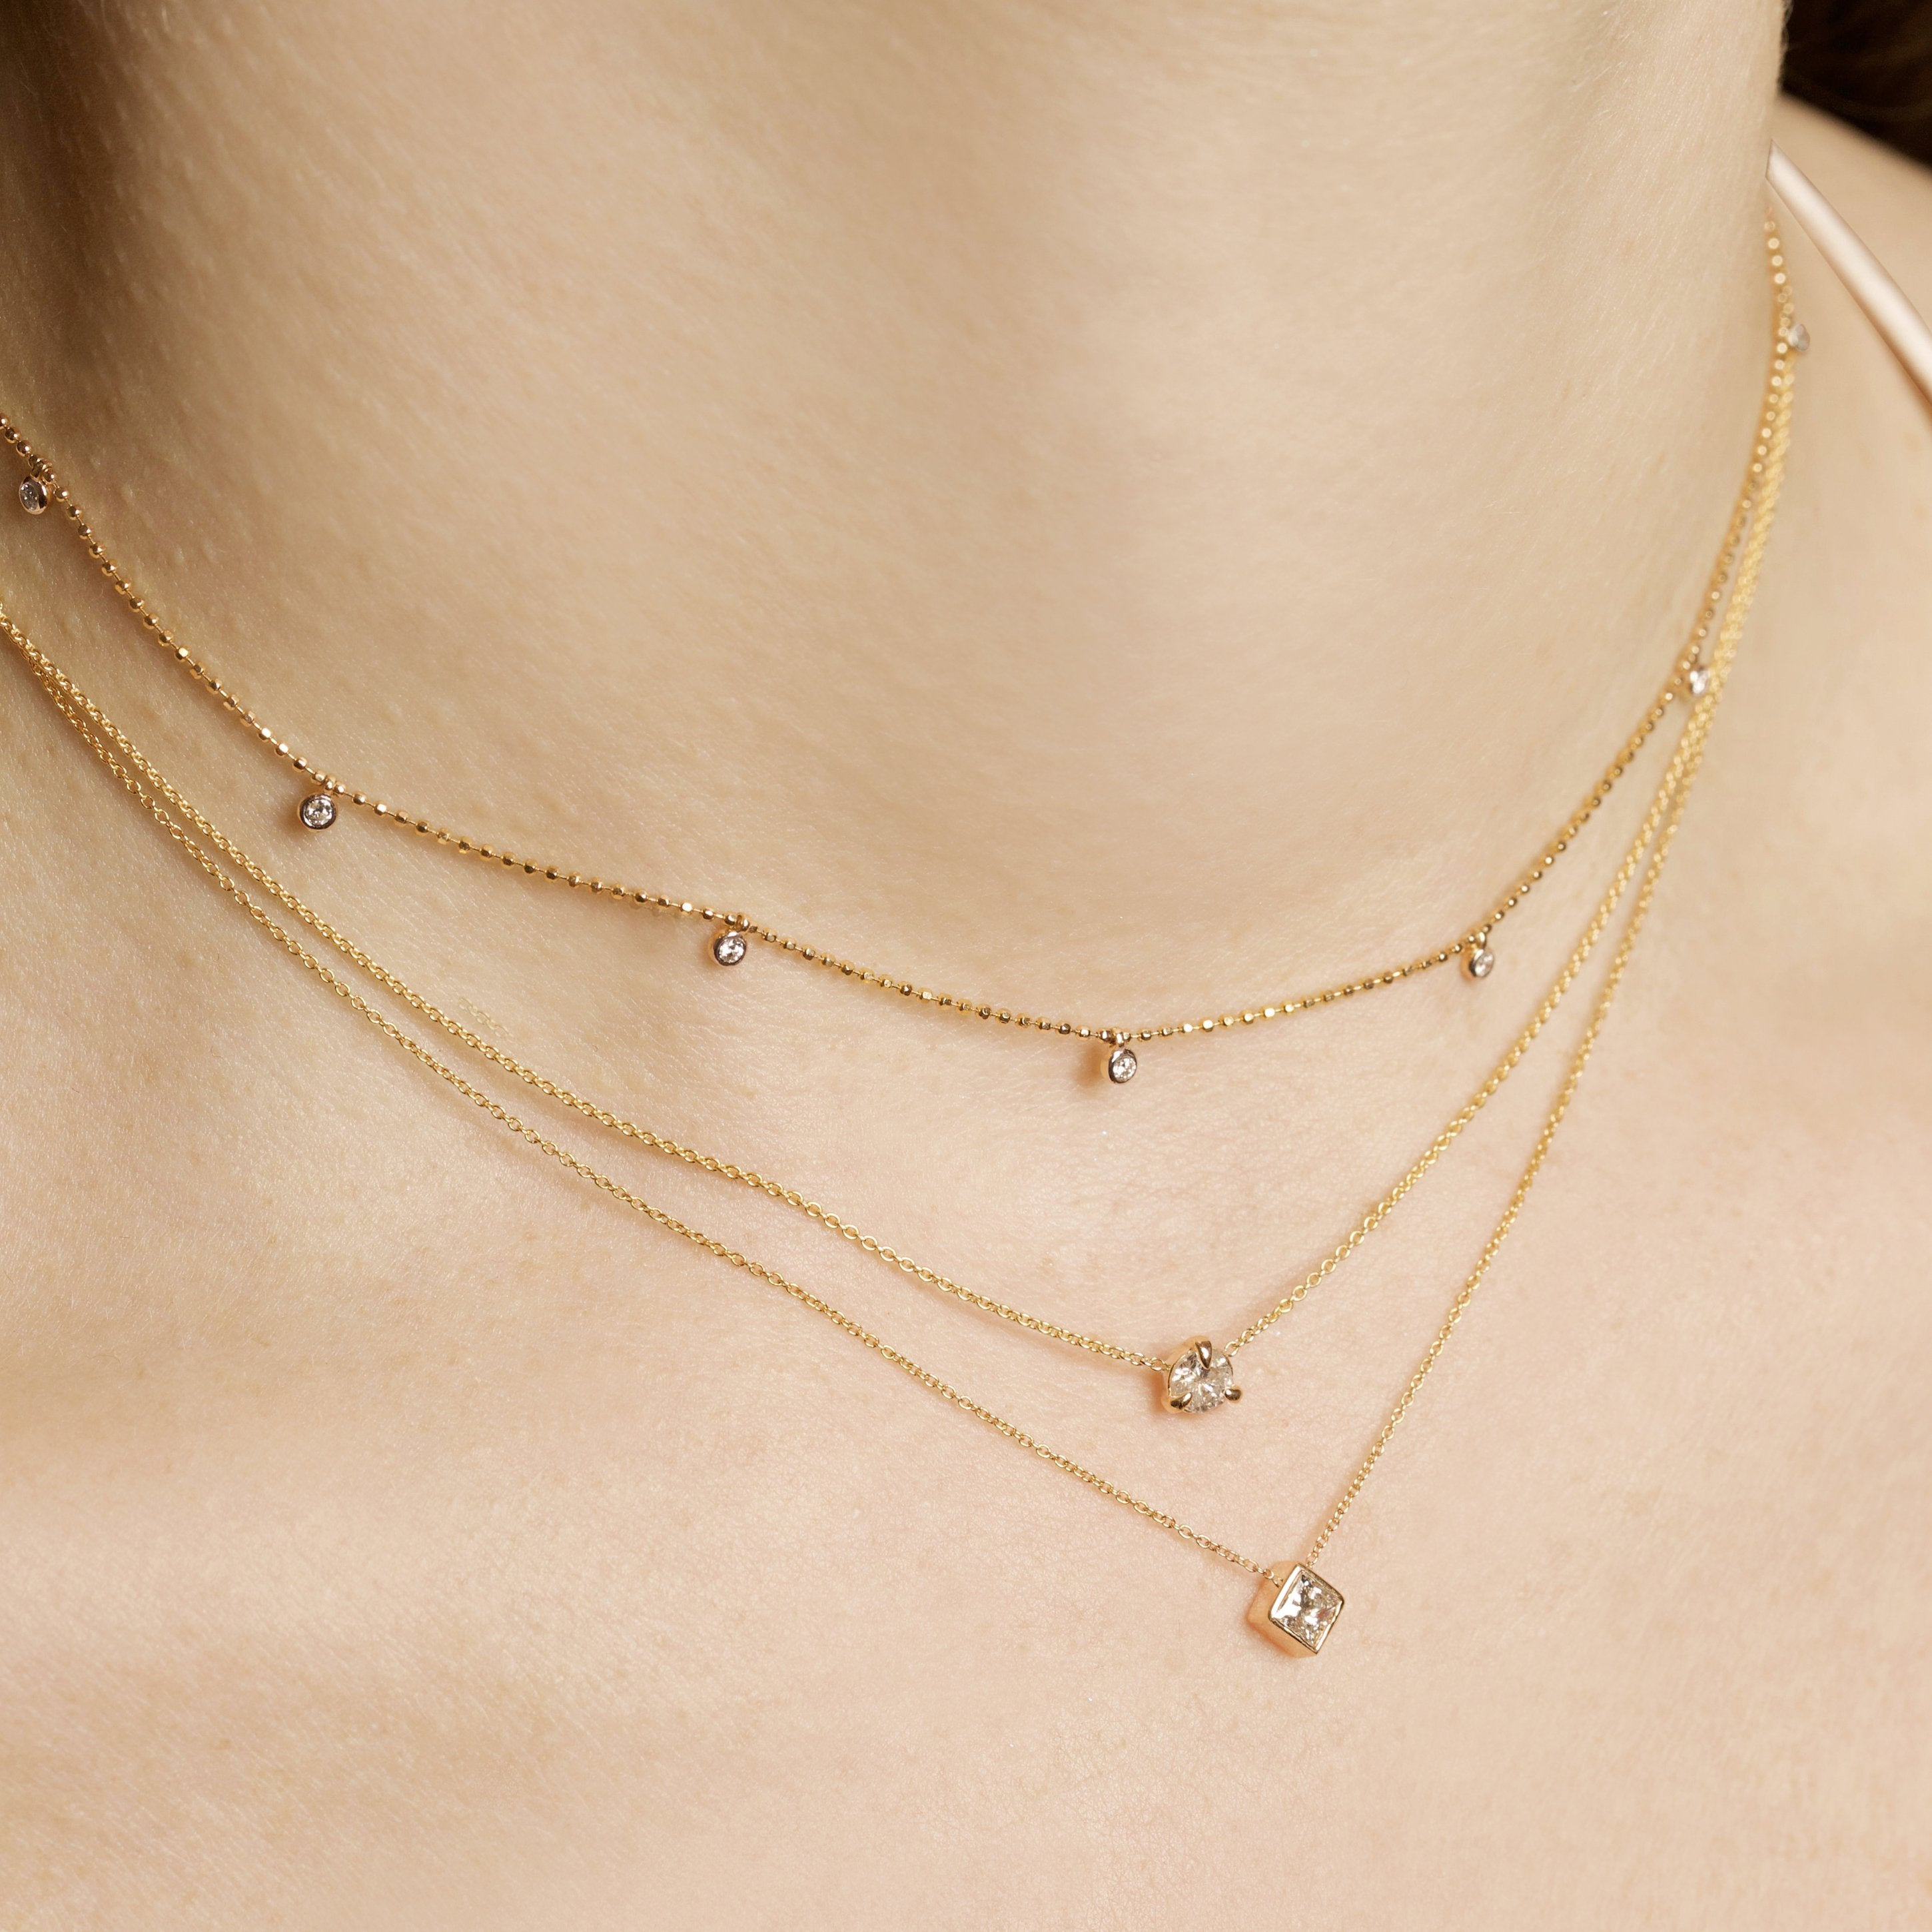 Small Princess Diamond Necklace